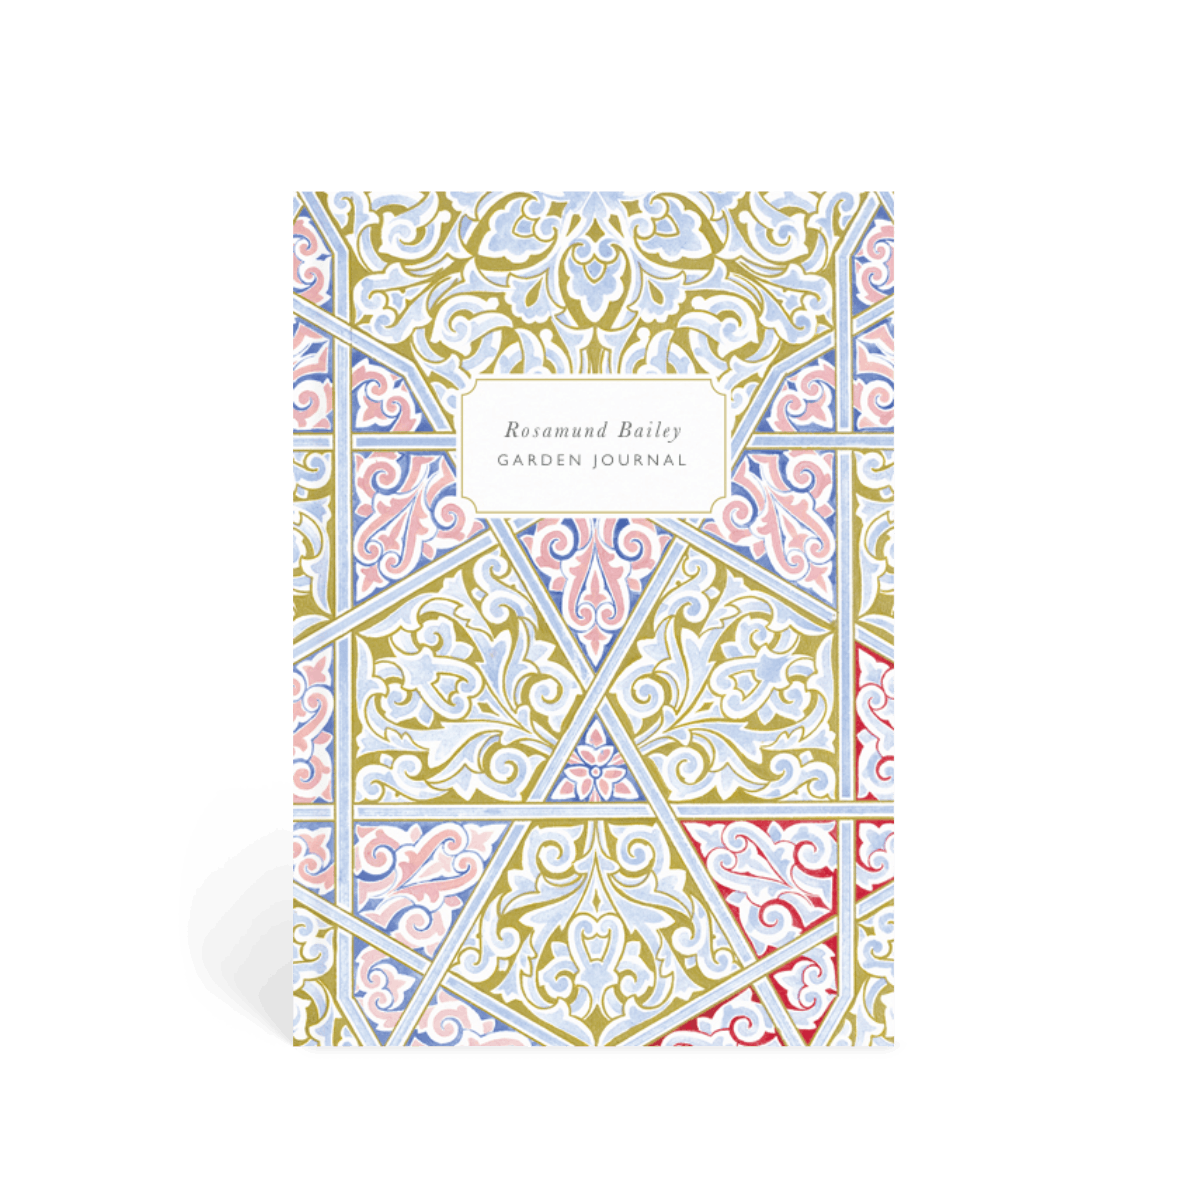 Https%3a%2f%2fwww.papier.com%2fproduct image%2f55264%2f25%2fpastel filigree 13275 front 1570454980.png?ixlib=rb 1.1